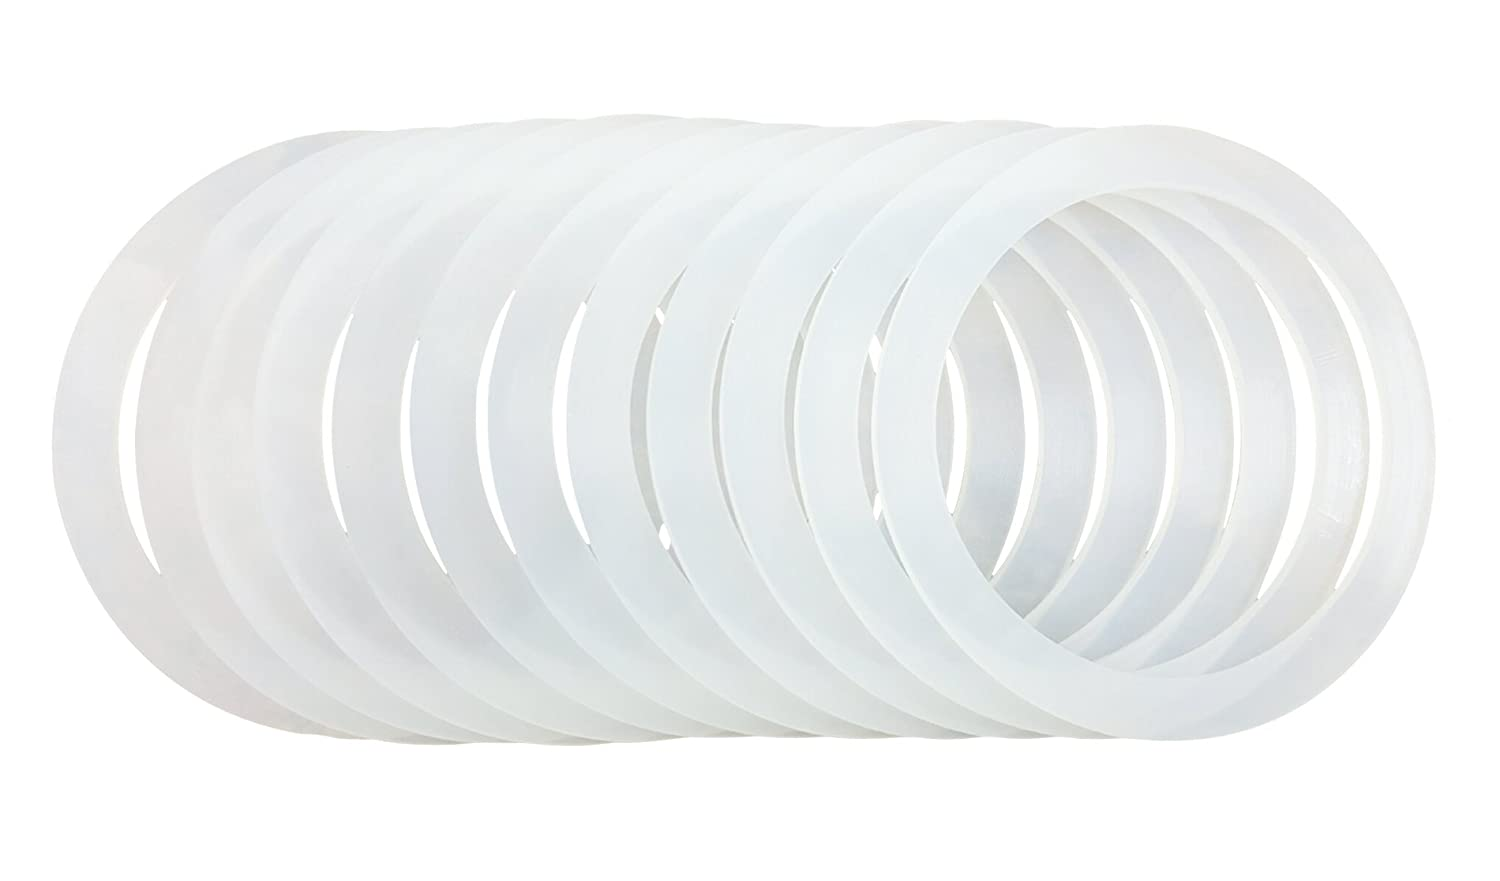 12 Silicone Gasket Sealing Rings For Mason Jar/Ball Plastic Storage Cap, Reusable Food-Grade Airtight Rubber Seal For Caning Jar Plastic Lids (12 REGULAR MOUTH)